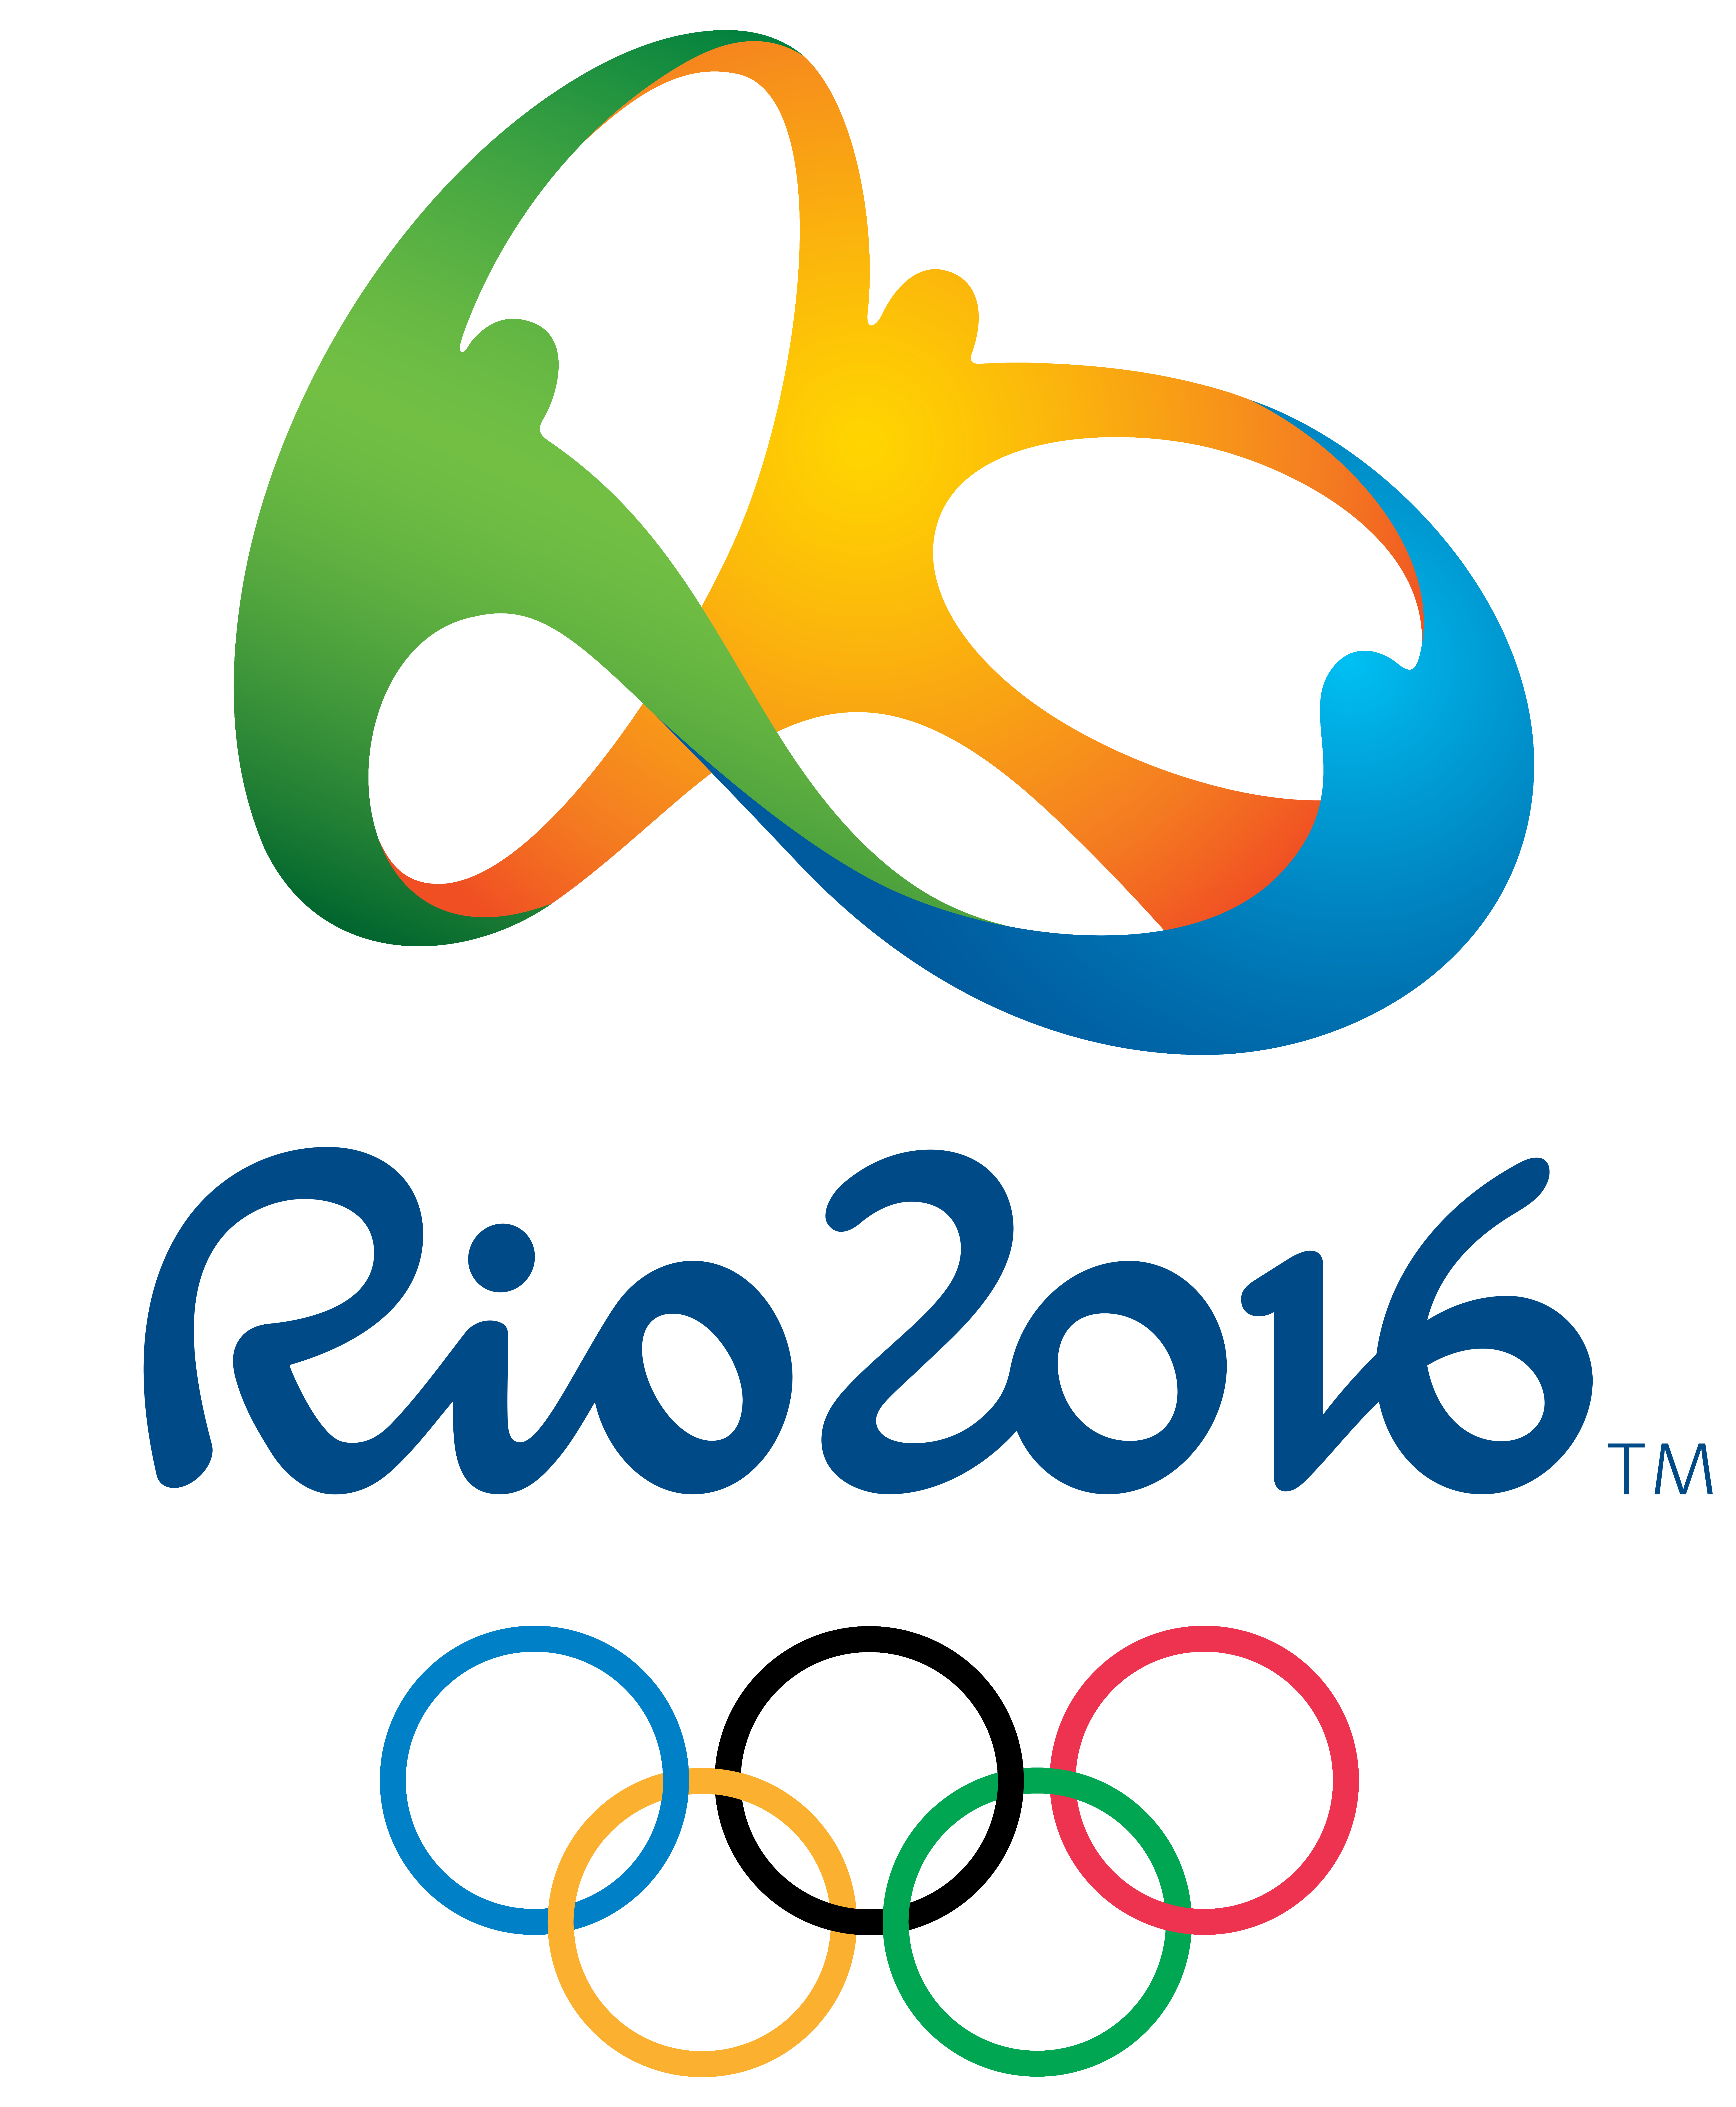 Rio official png transparent. Games clipart olympic